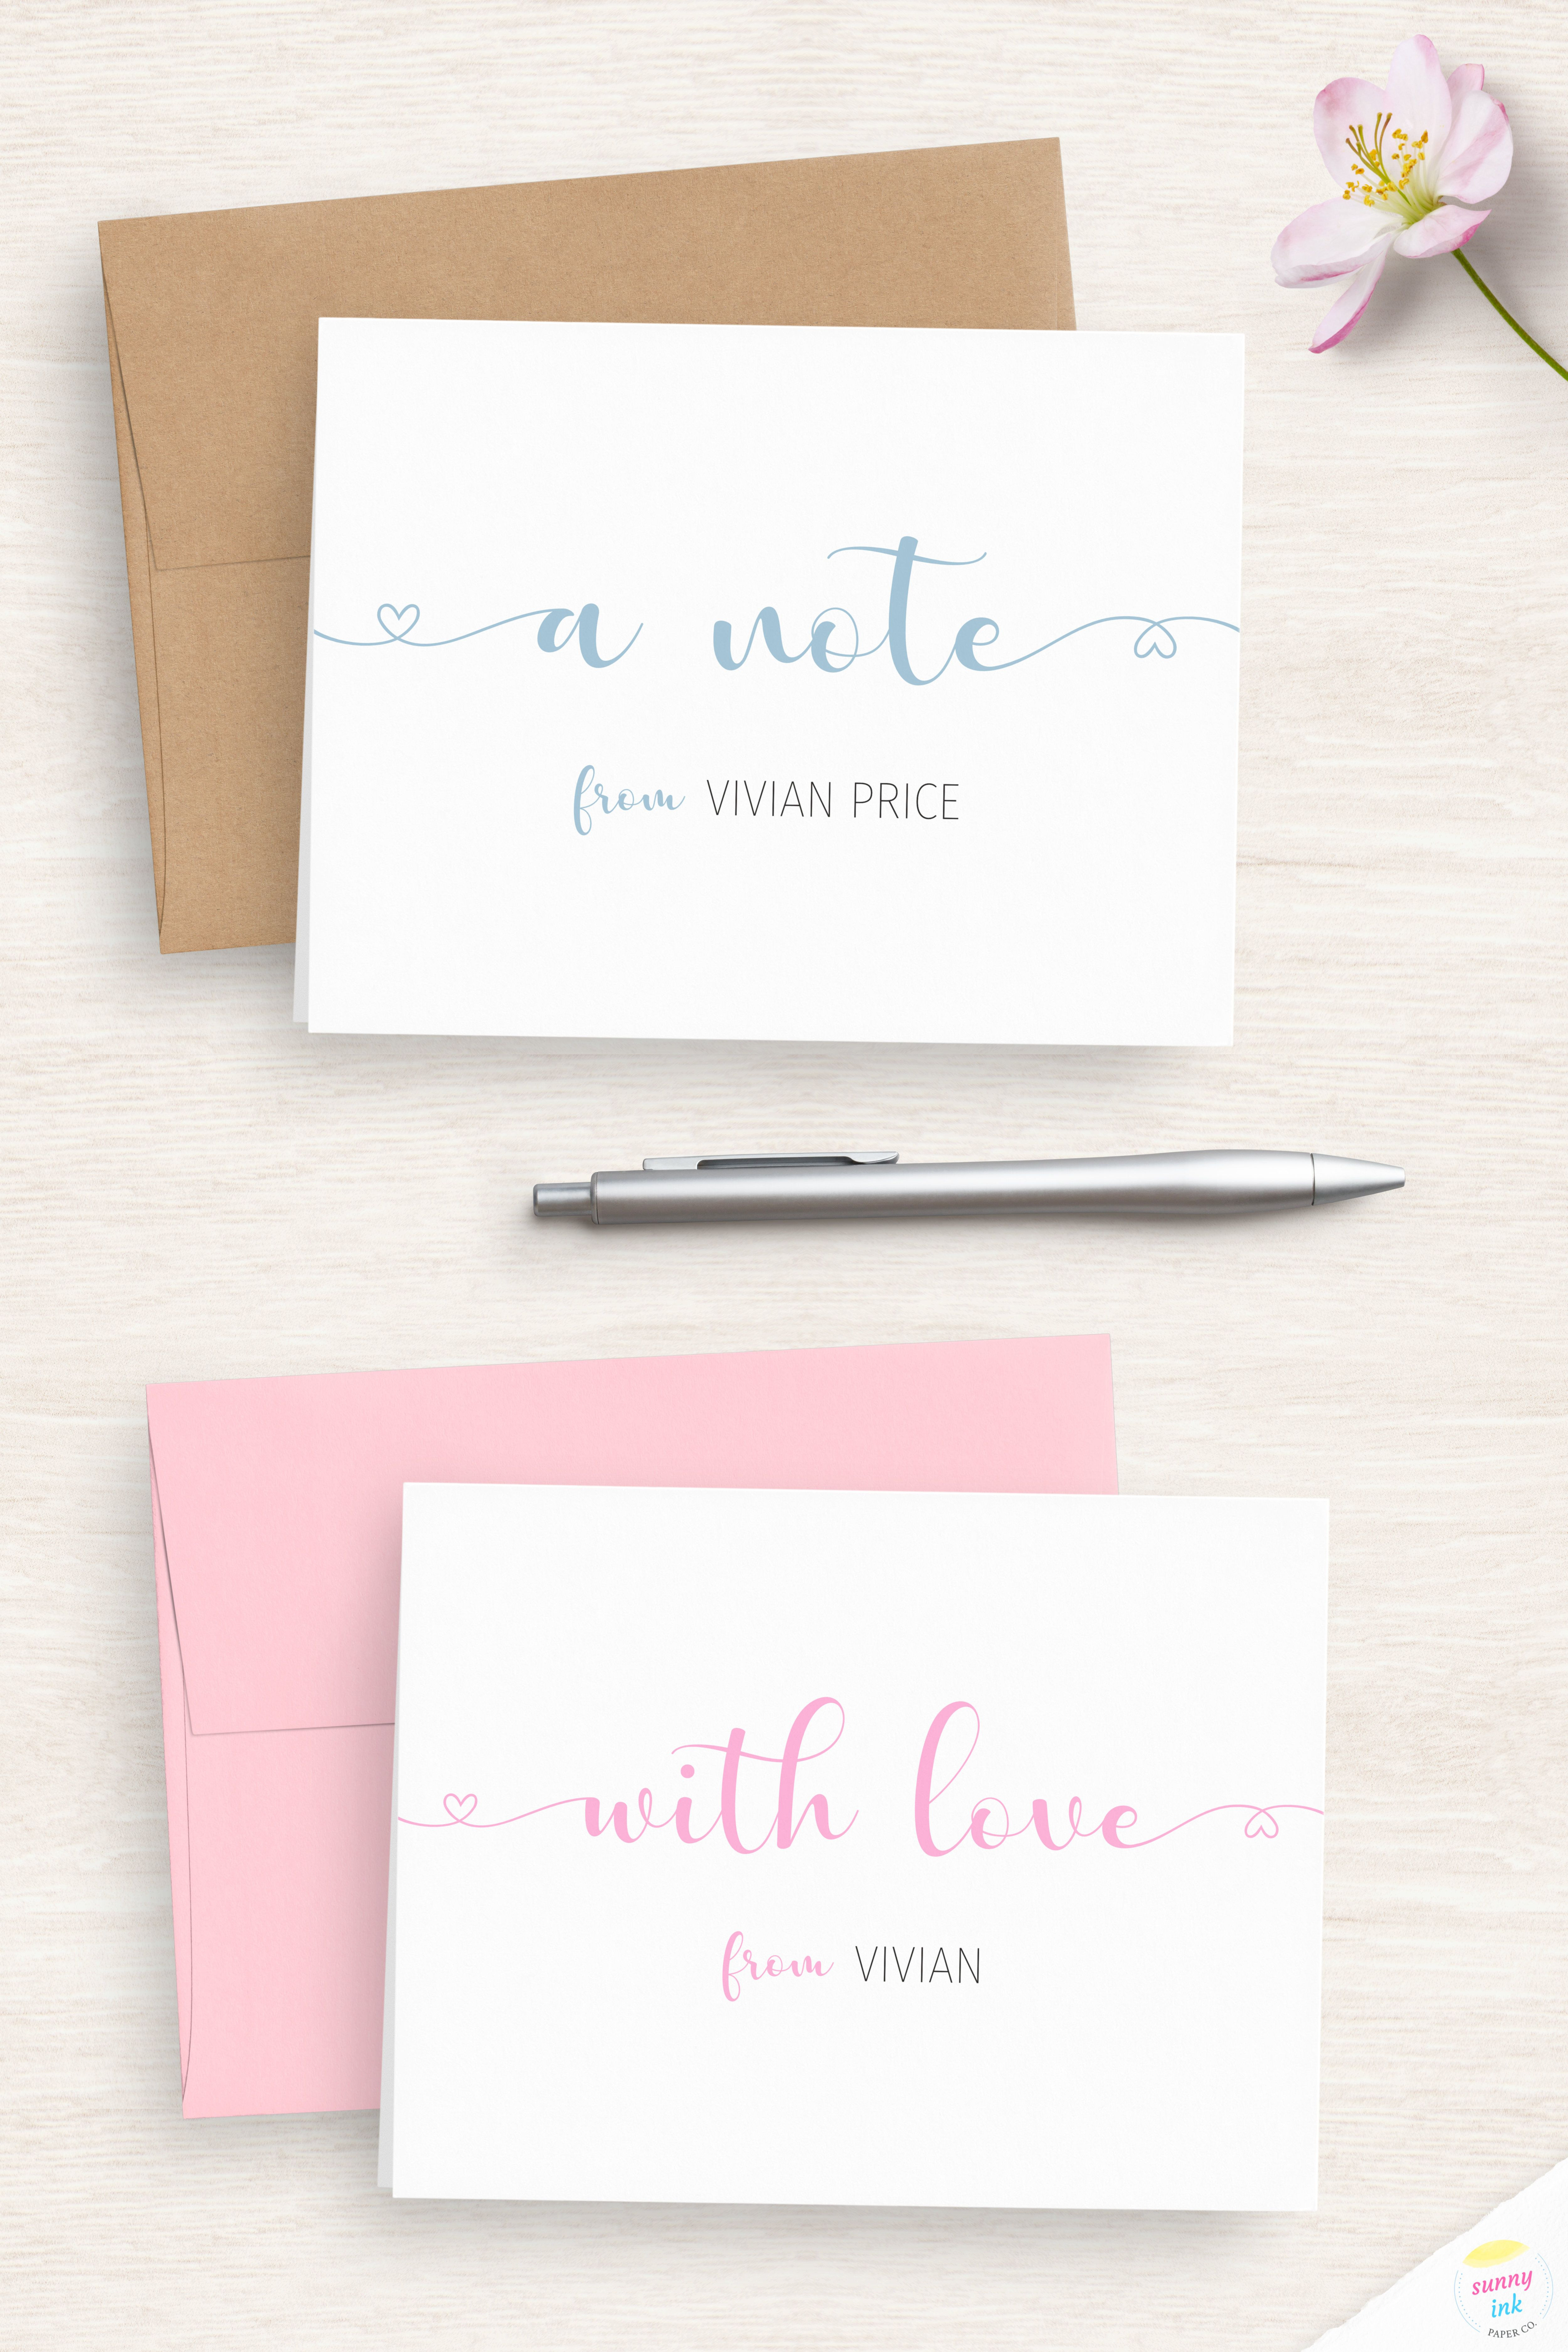 Note Cards Handmade Personalized Folded Note Cards Monogrammed Note Cards Note Cards for Women Note Cards Note Cards With Envelopes